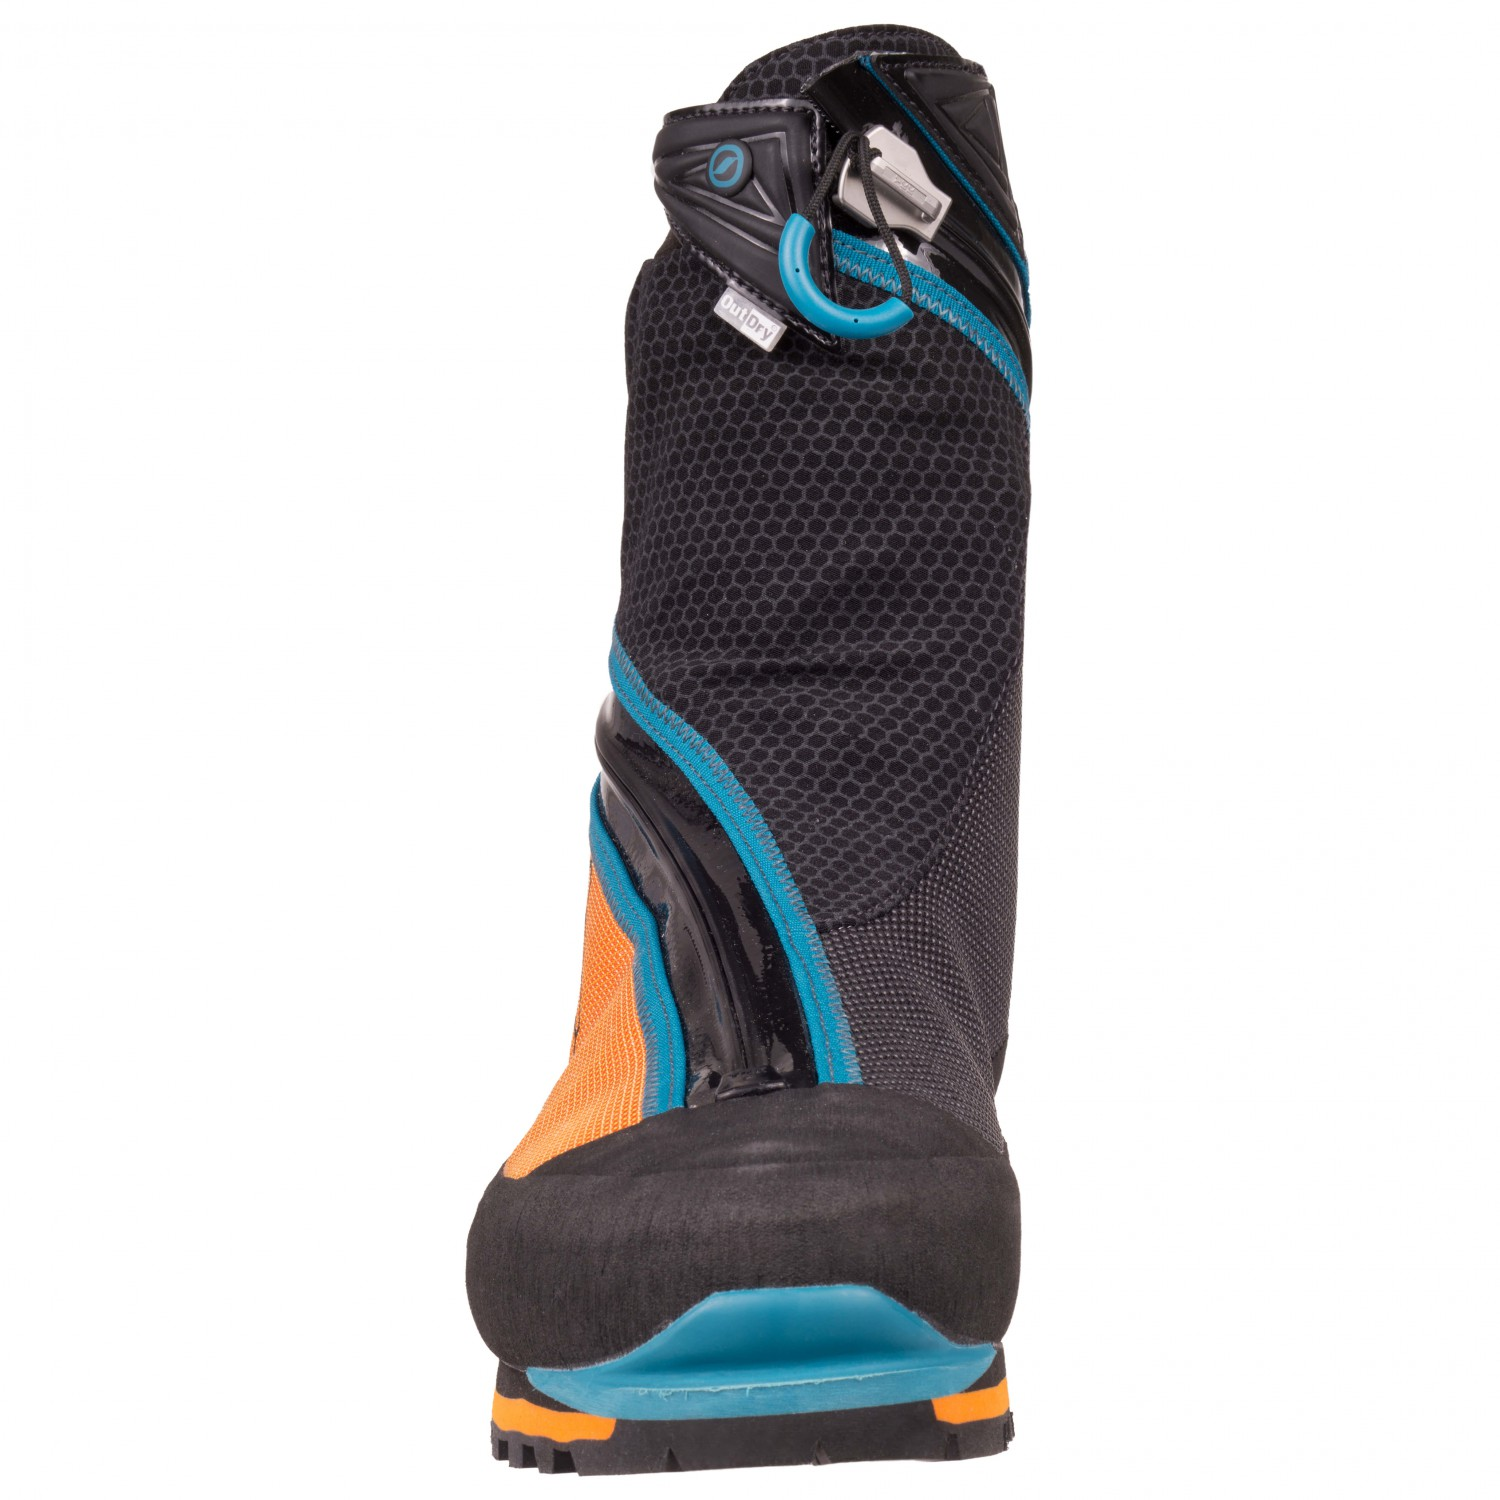 acc200d32b9a6 ... Scarpa - Phantom Tech - Mountaineering boots ...